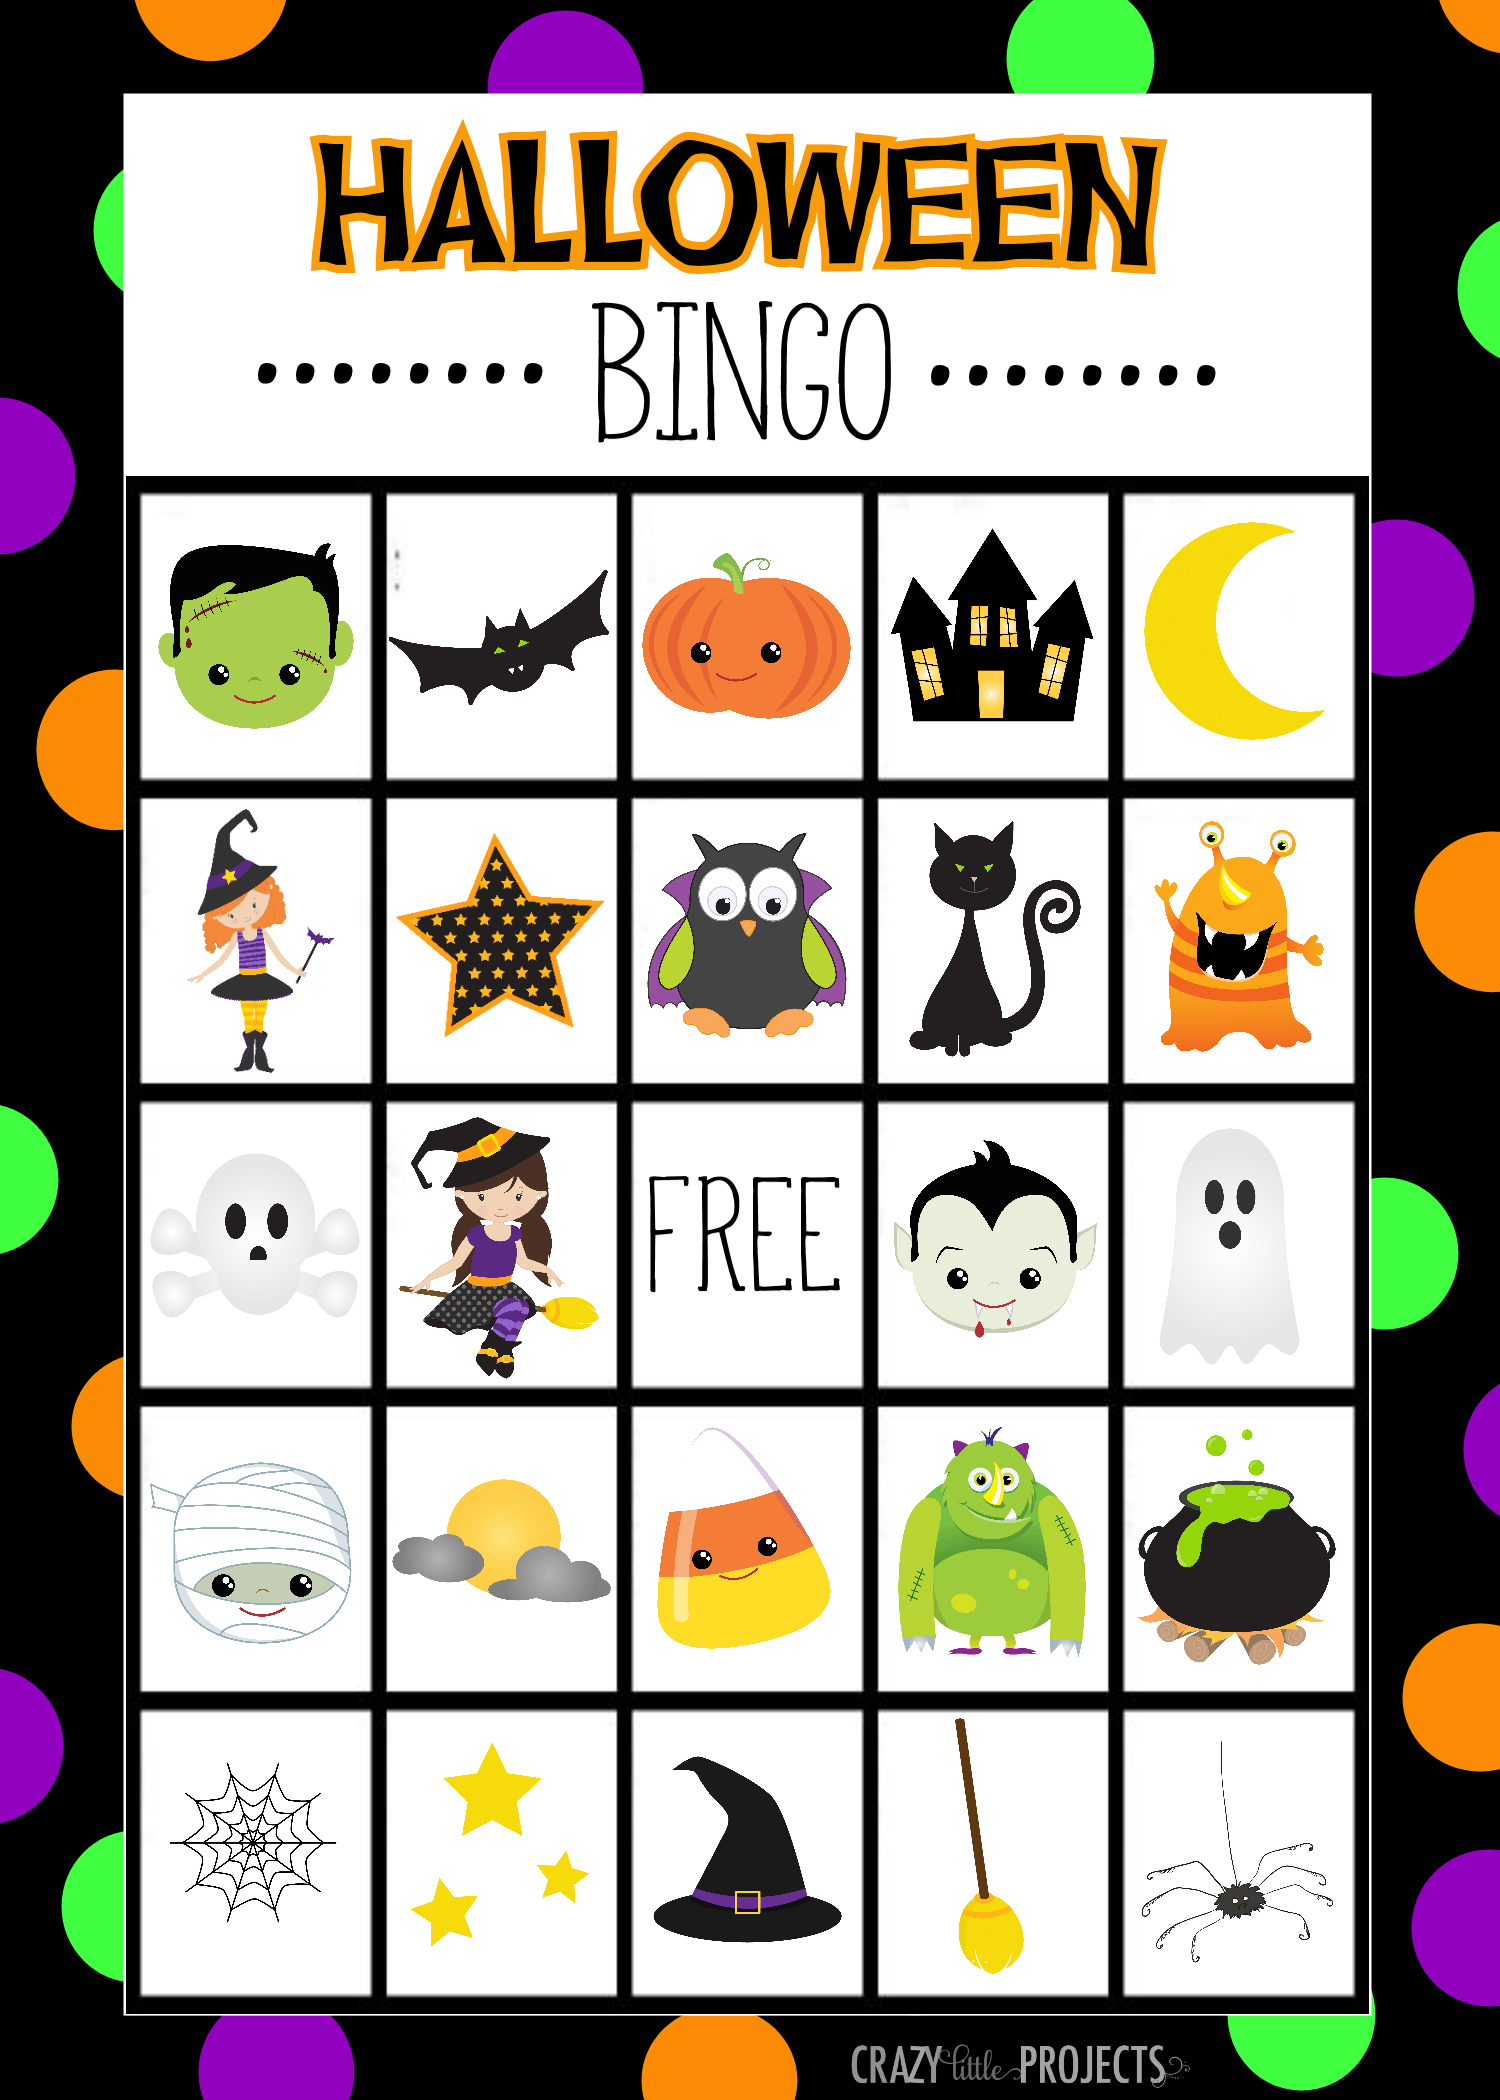 image about Bingo Patterns Printable titled Halloween Bingo - Lovely Cost-free Printable Match Exciting-Squared